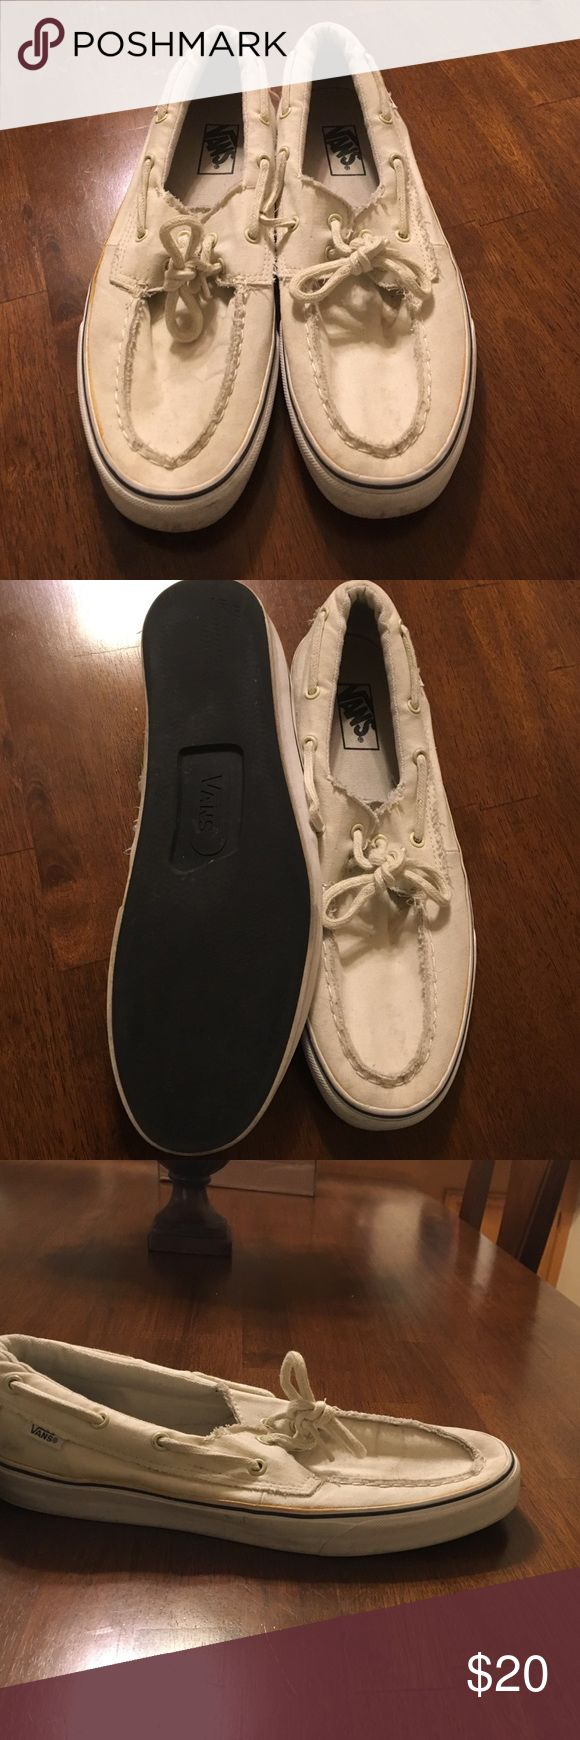 Men's white vans White vans zapato style Vans Shoes Boat Shoes